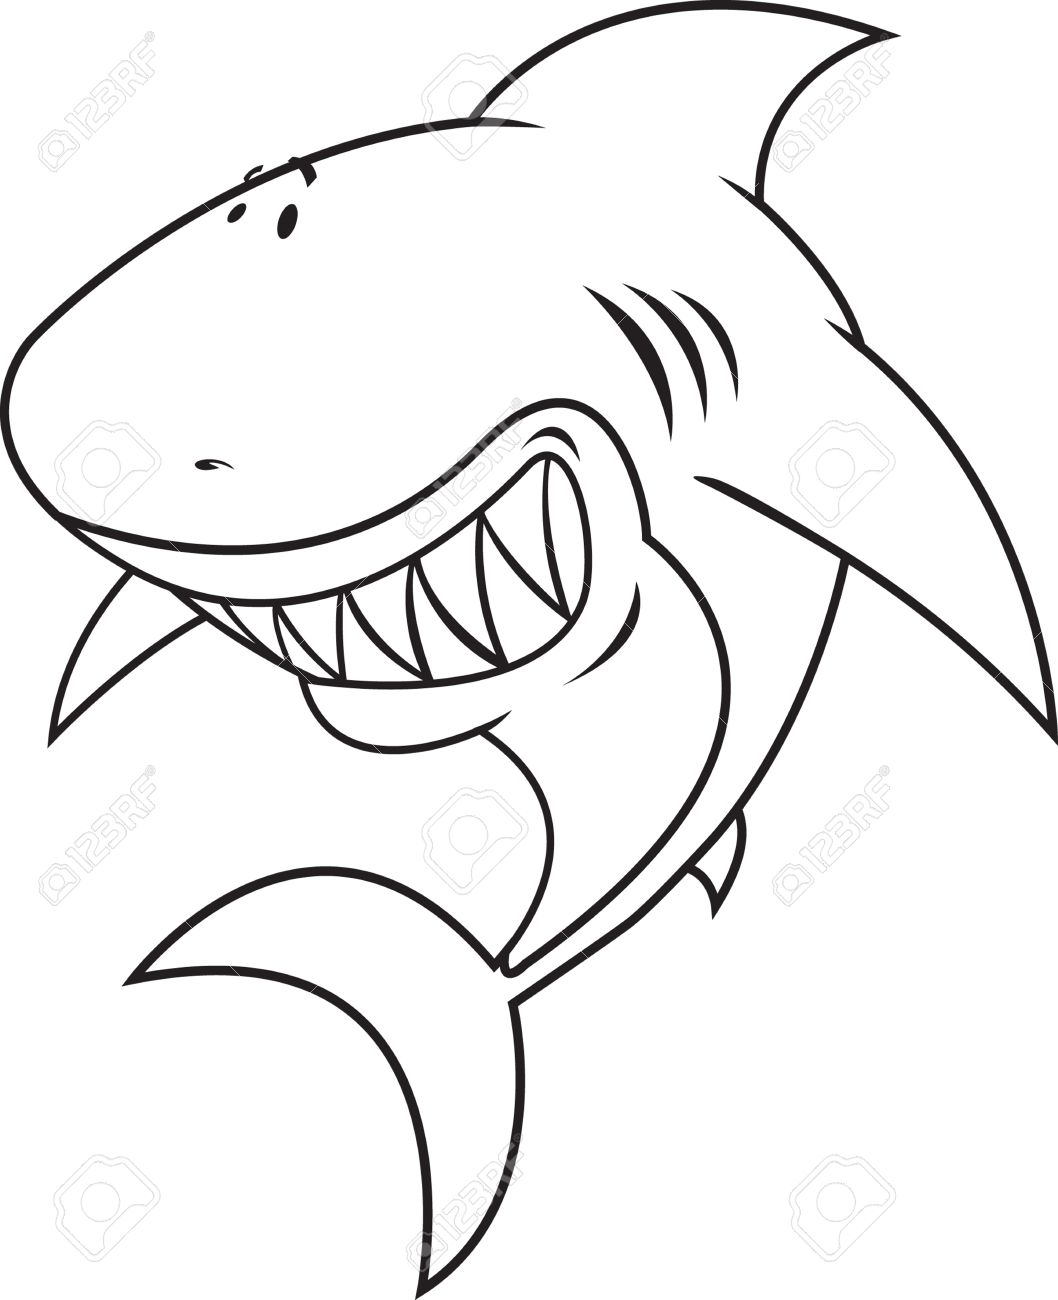 1058x1300 Great White Shark Coloring Book Illustration Royalty Free Cliparts